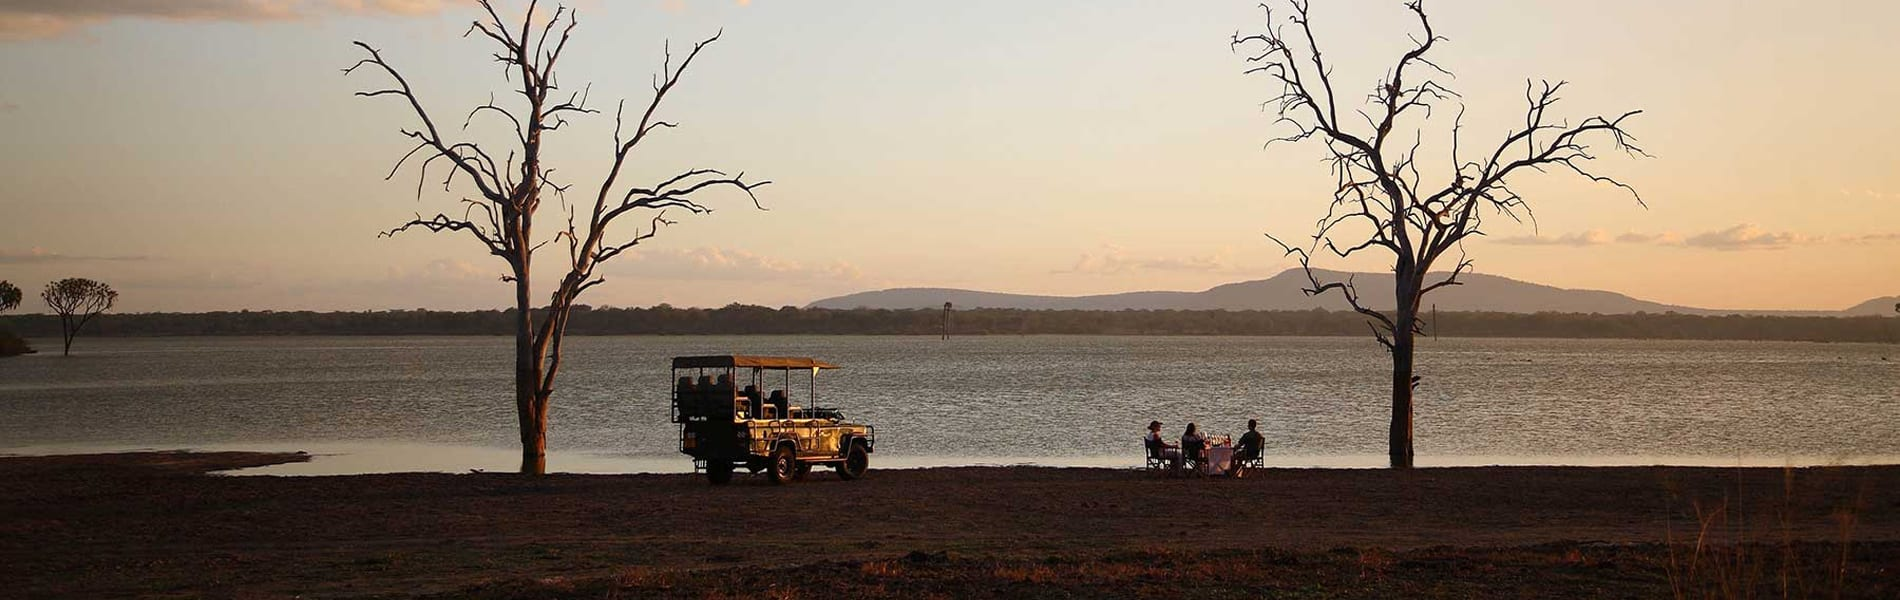 Siwandu Camp sundowner